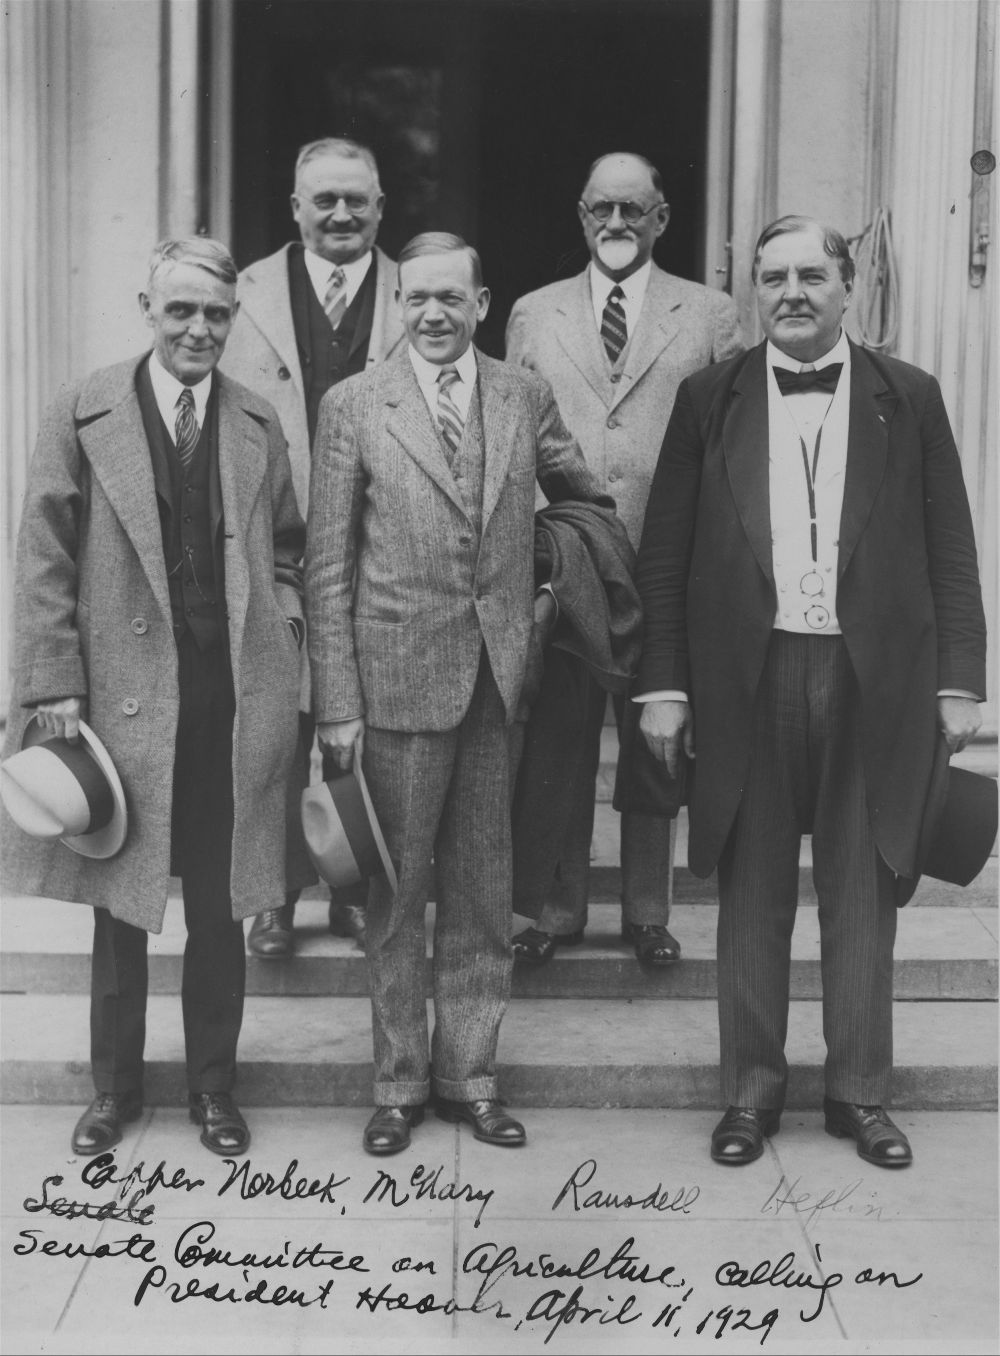 Arthur Capper, with Senators Norbeck, McNary, Ransdell, and Heflin calling on President Herbert Hoover at the White House